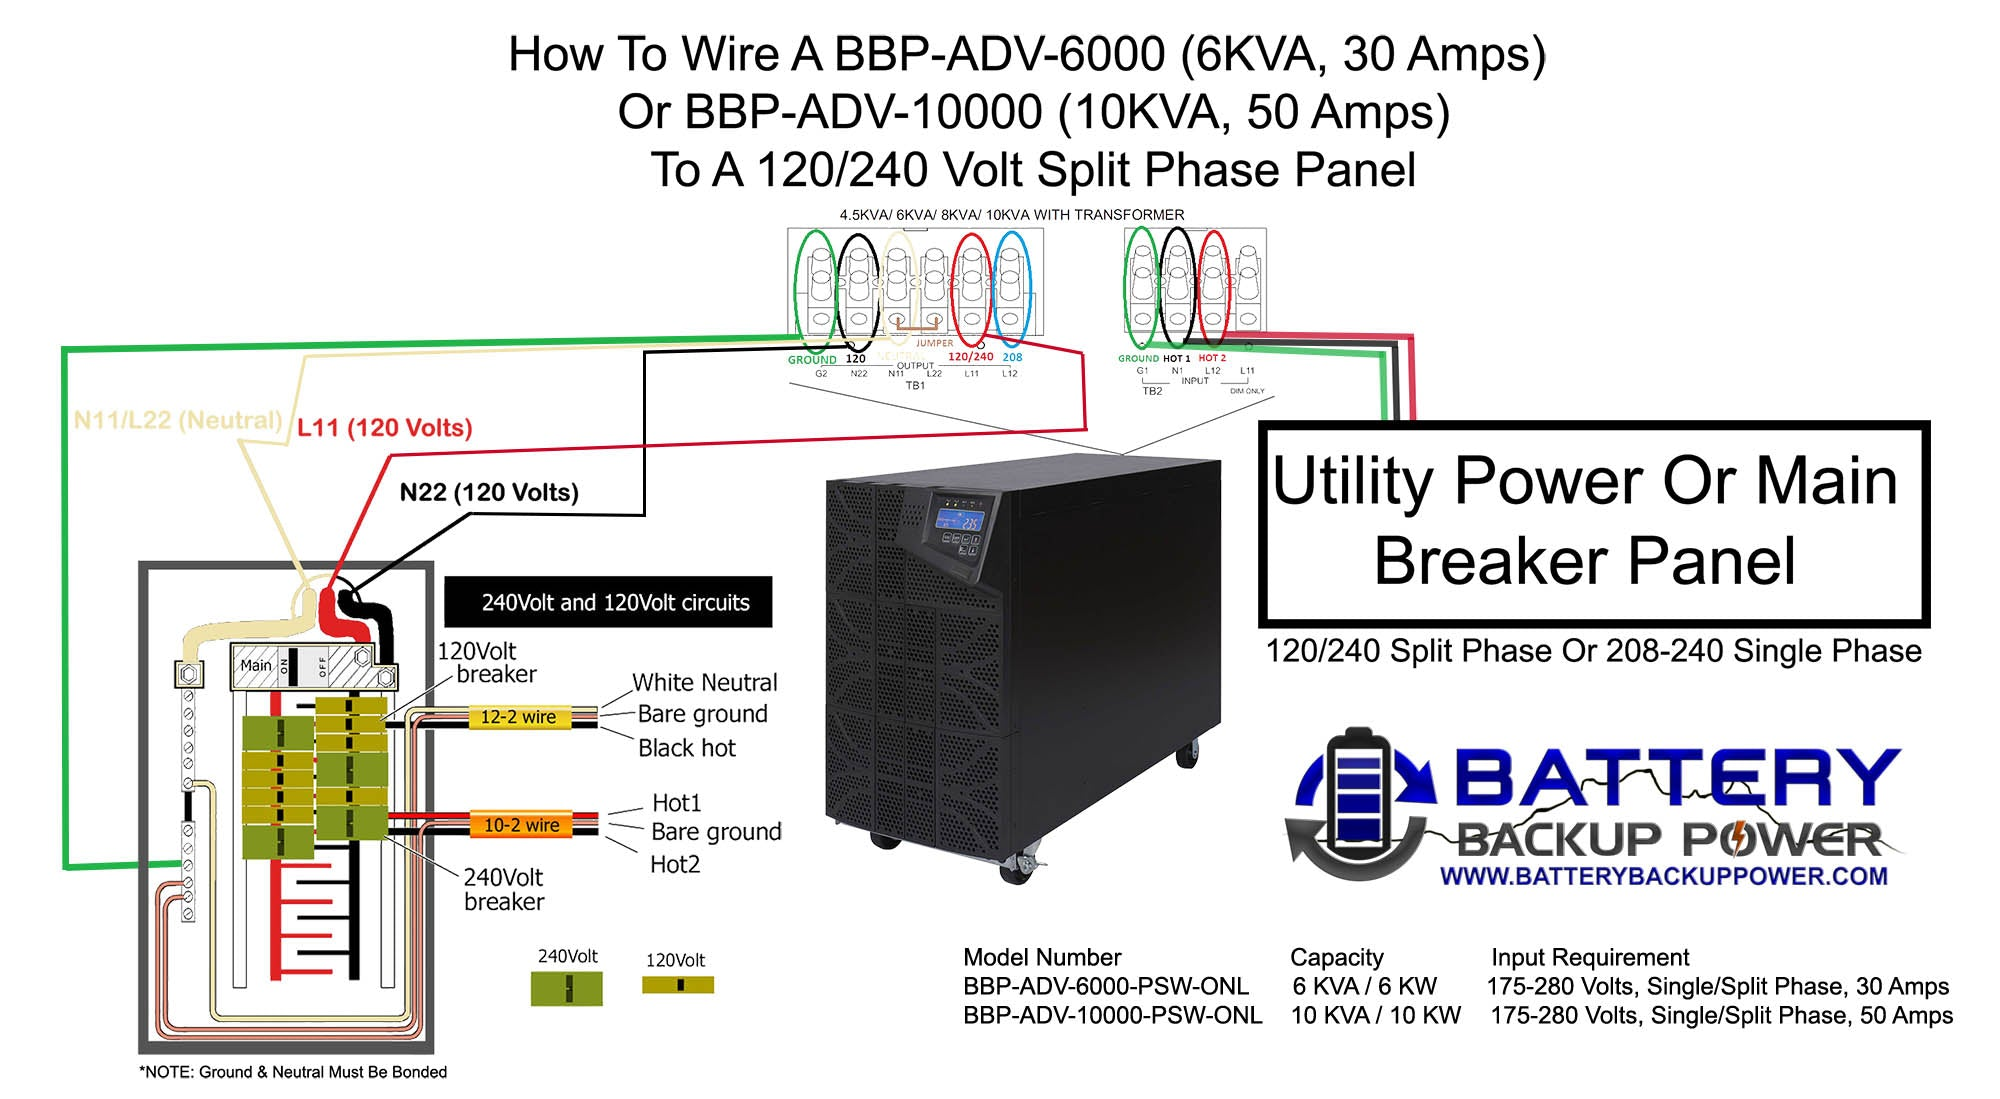 [SCHEMATICS_48IS]  Wiring A Battery Backup Power UPS To A Subpanel – Battery Backup Power, Inc. | 208v Panel Wiring Diagram |  | Battery Backup Power, Inc.